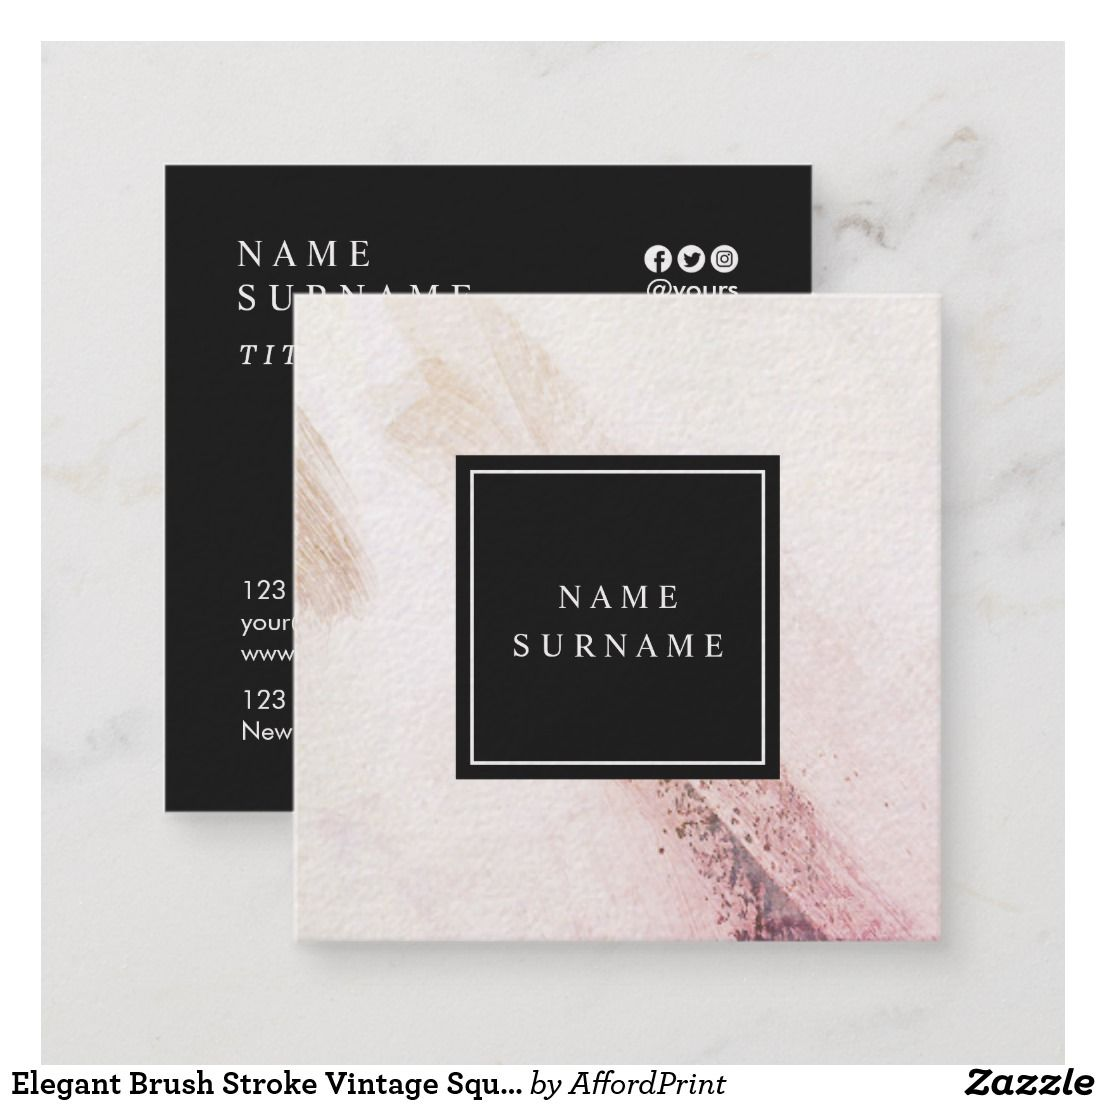 Square Business Cards Print Square Cards From Jukebox Mini Business Card Square Business Cards Business Cards Creative